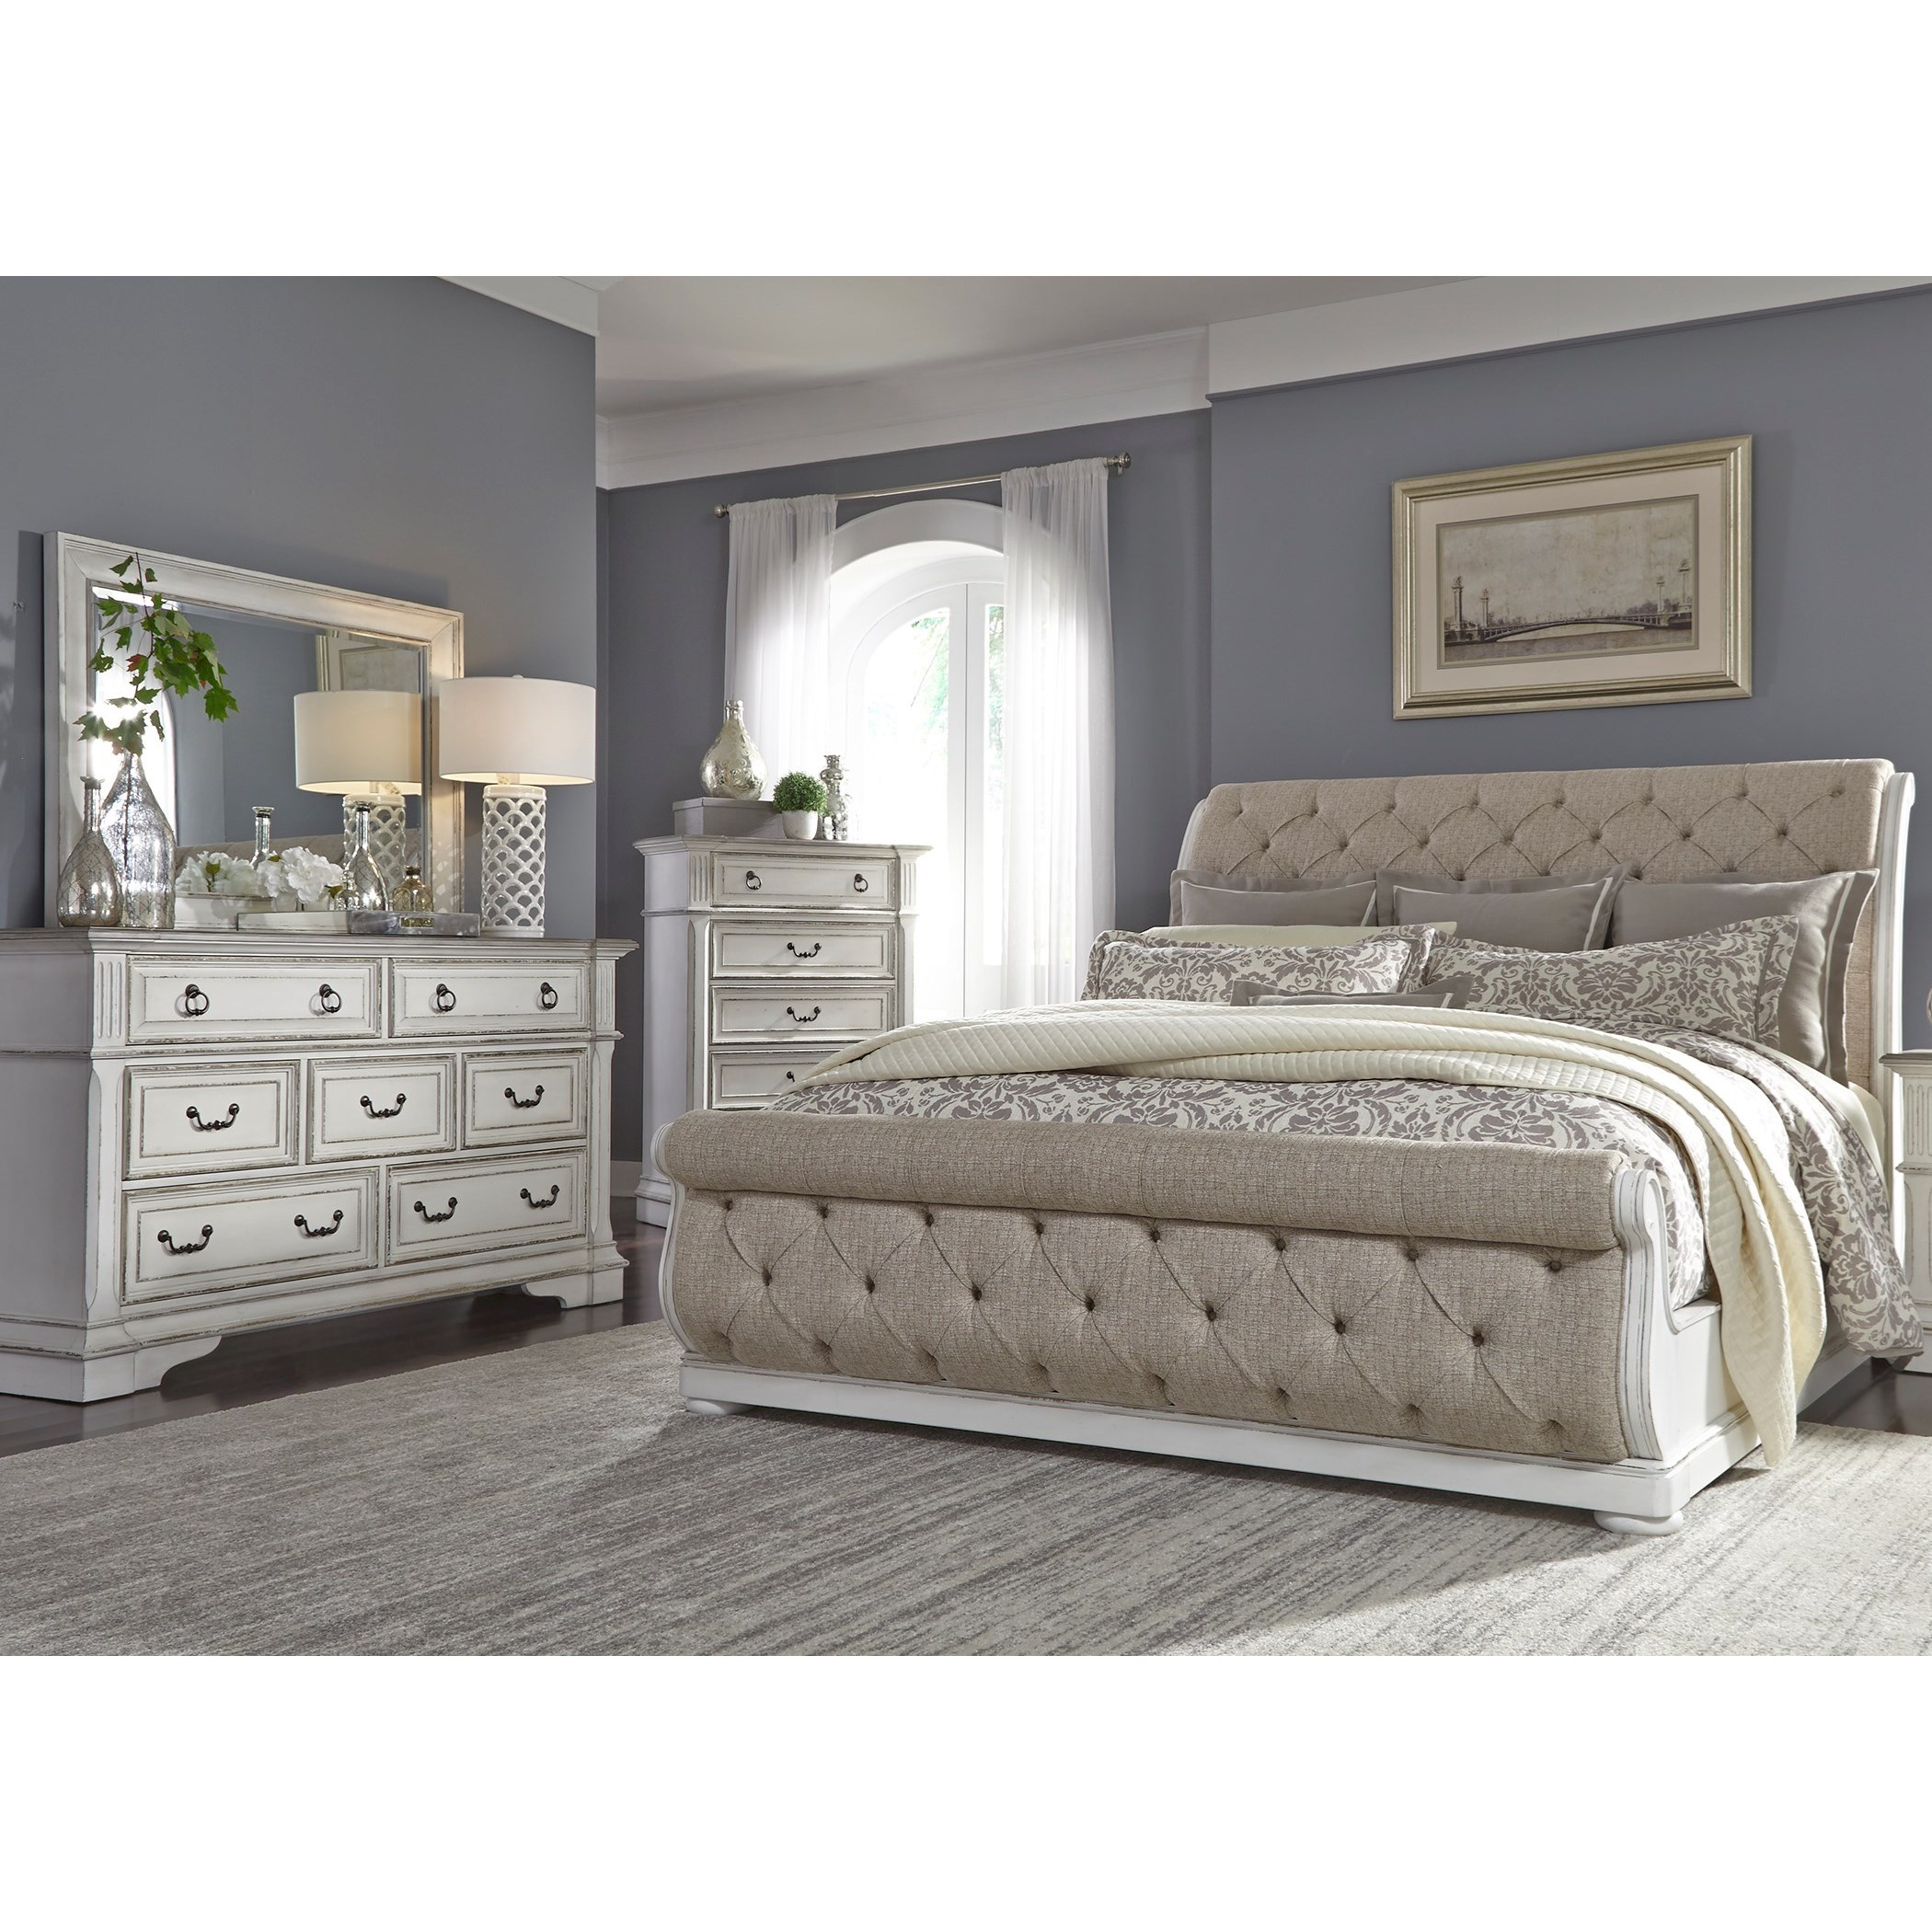 Abbey Park Queen Bedroom Group by Liberty Furniture at Novello Home Furnishings